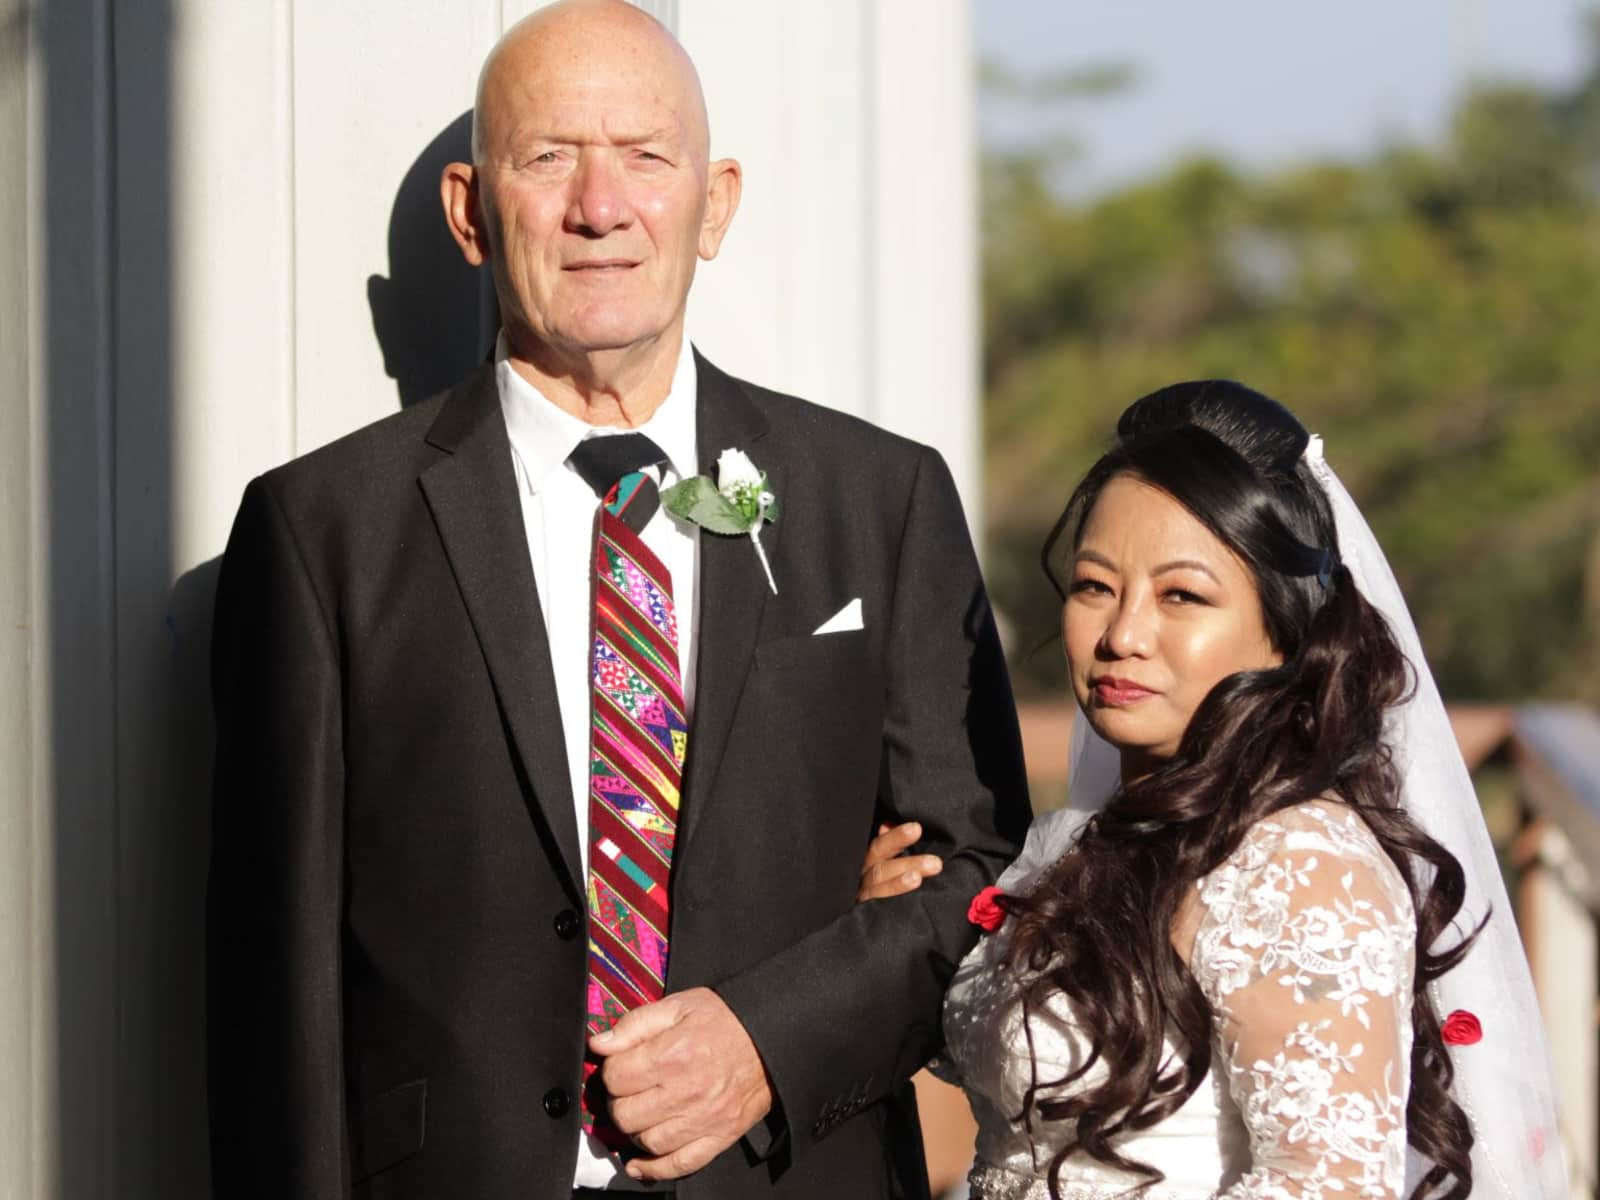 John chapman & Lucy from Fortuna, California, United States